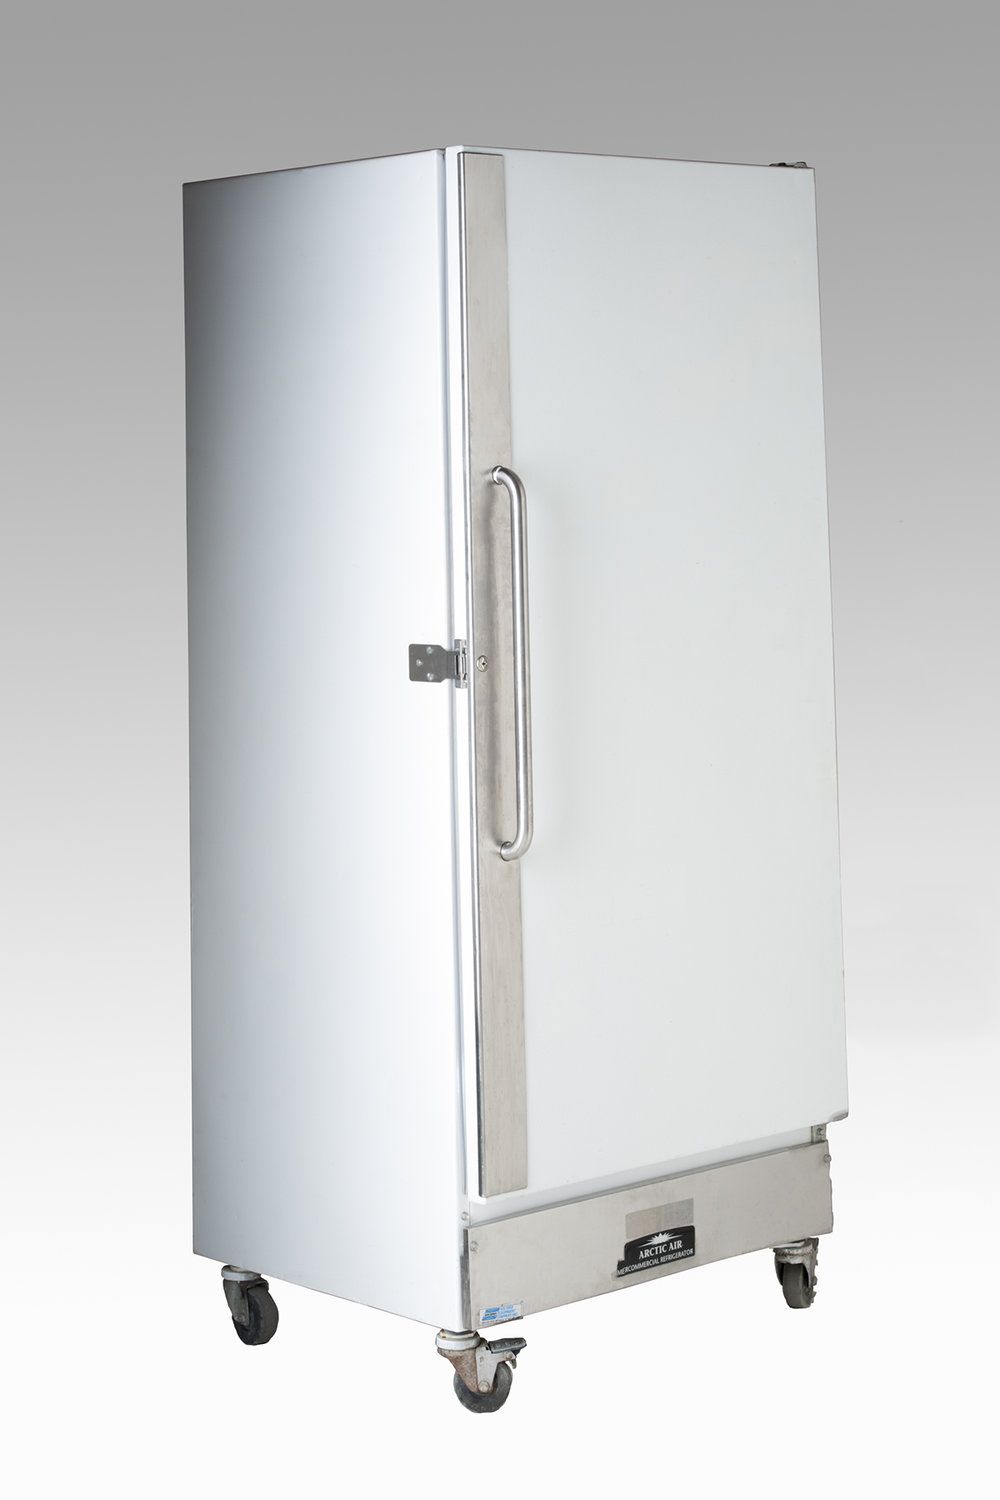 White Upright Freezer 22 cubic Feet 6 amps  $220.00